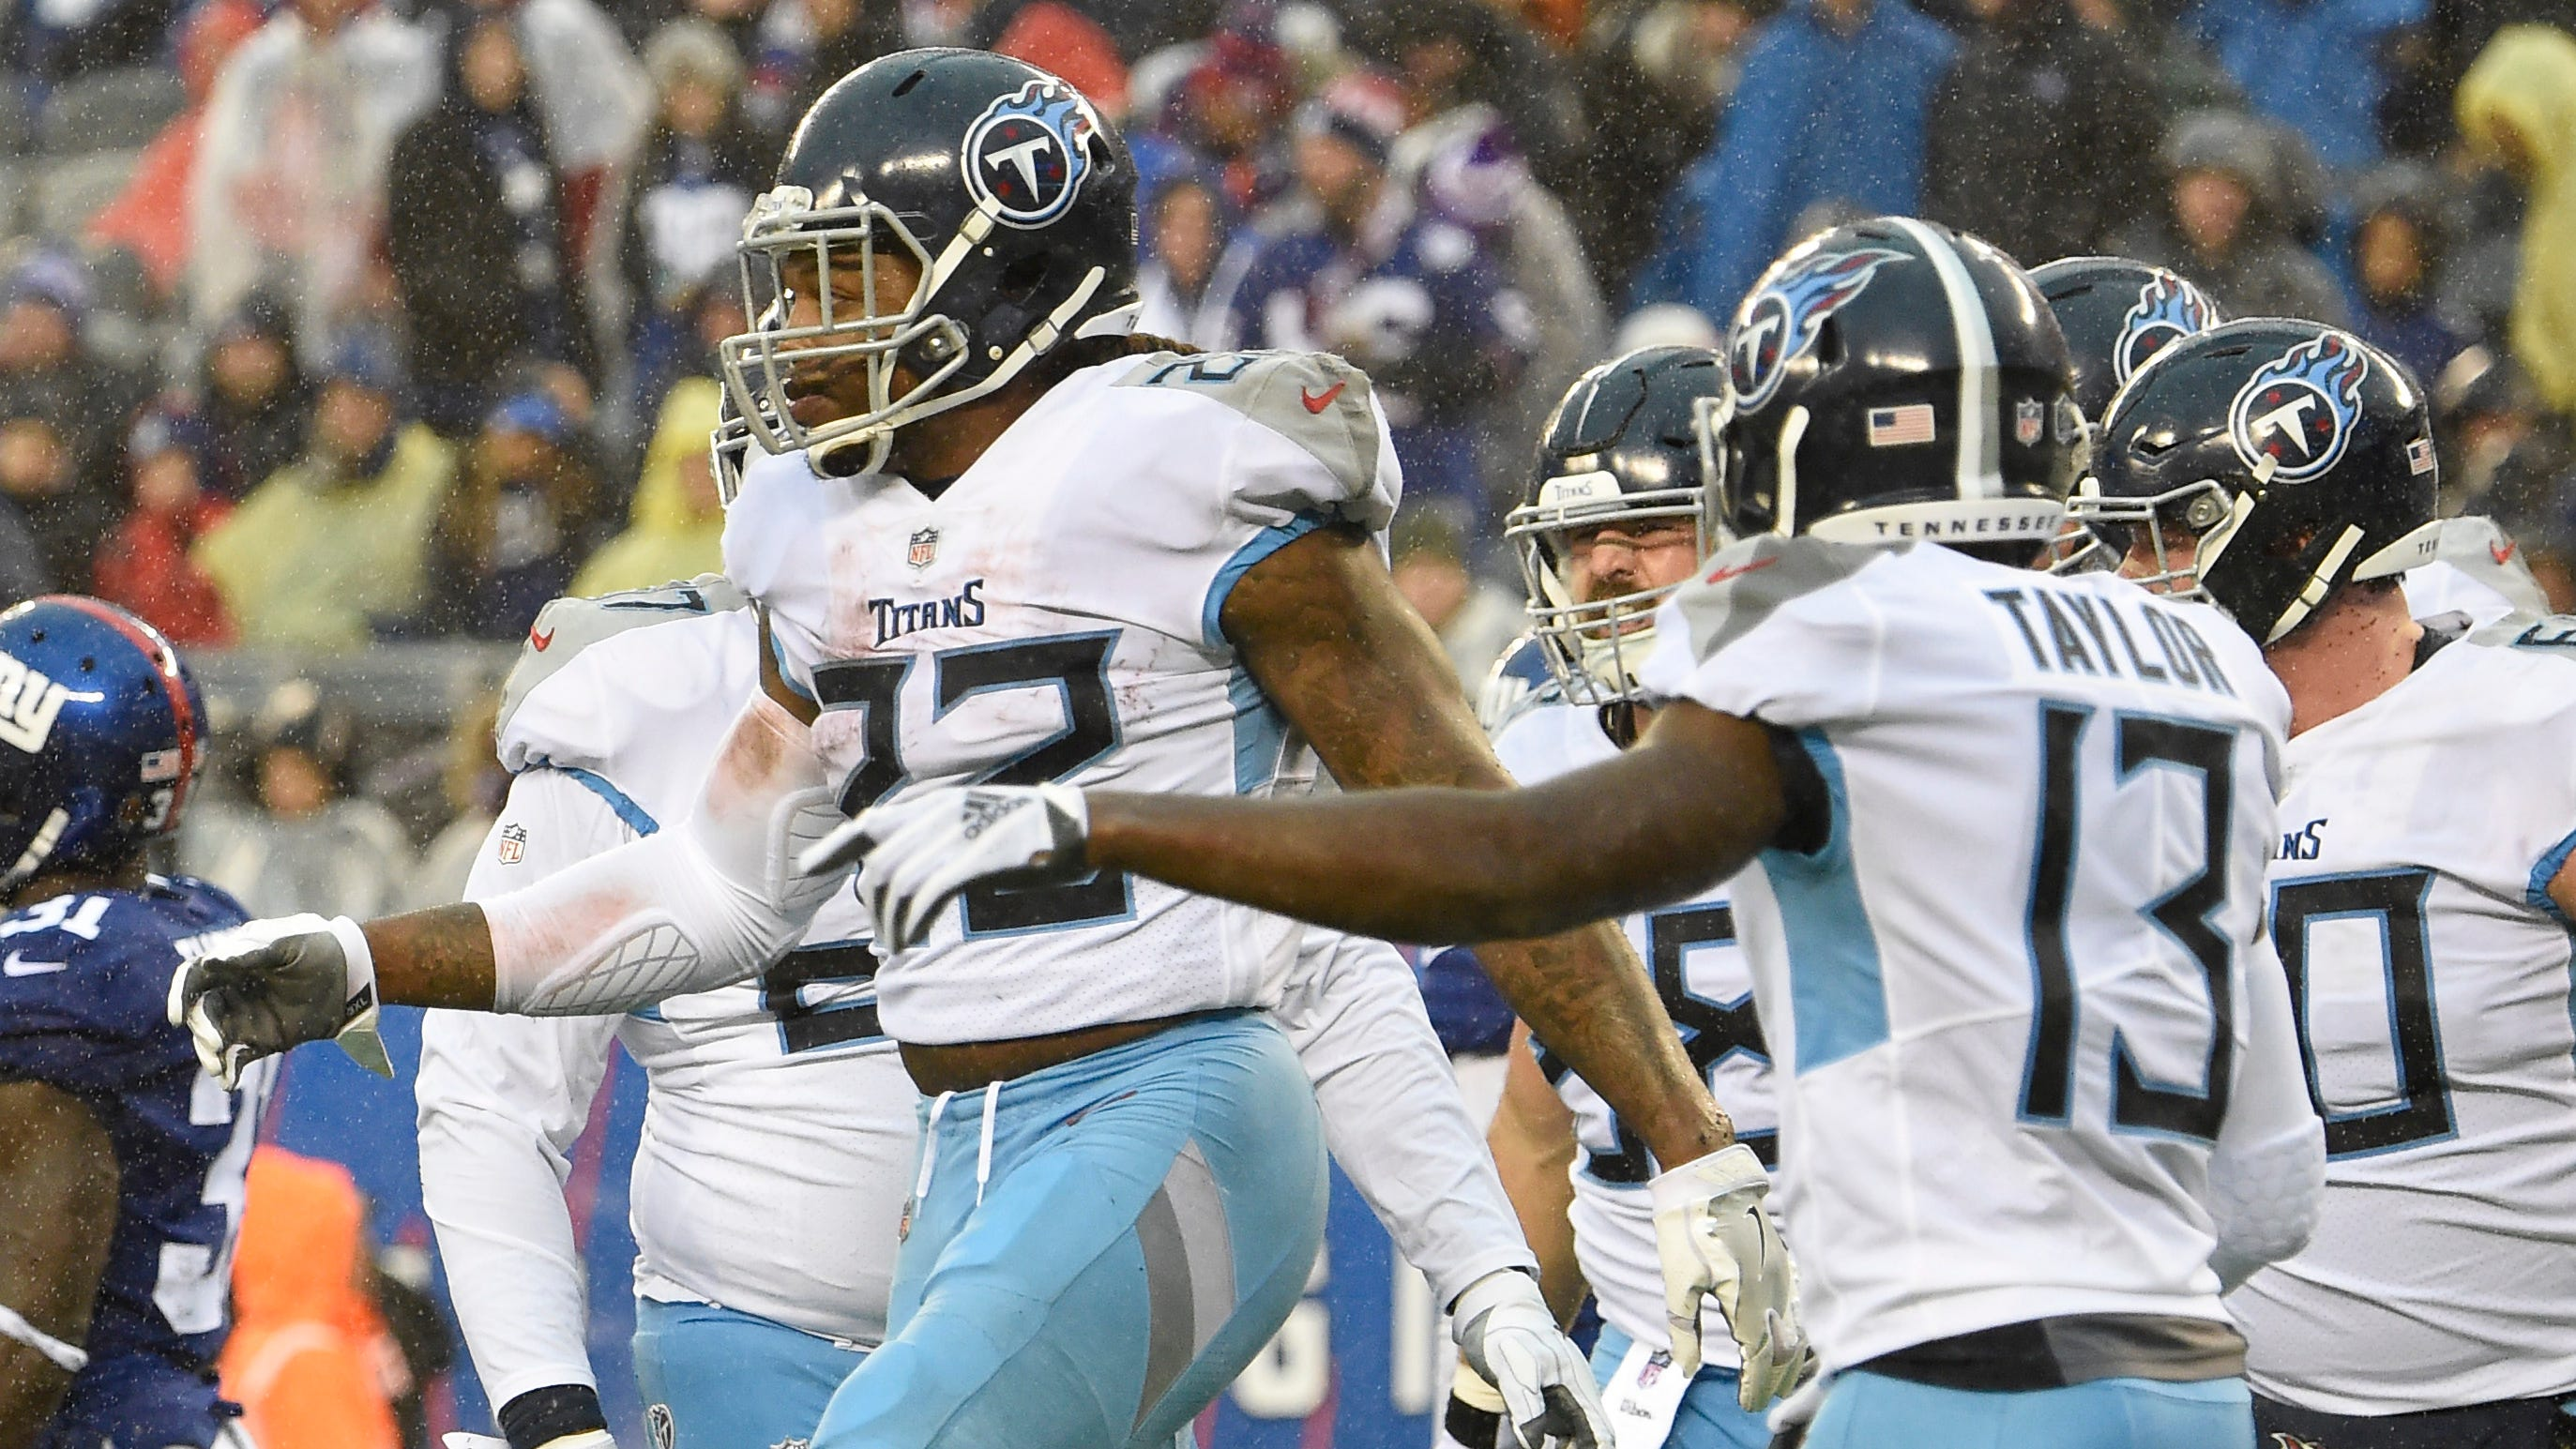 Titans running back Derrick Henry (22) celebrates his touchdown in the first quarter at MetLife Stadium Sunday, Dec. 16, 2018, in East Rutherford, N.J.